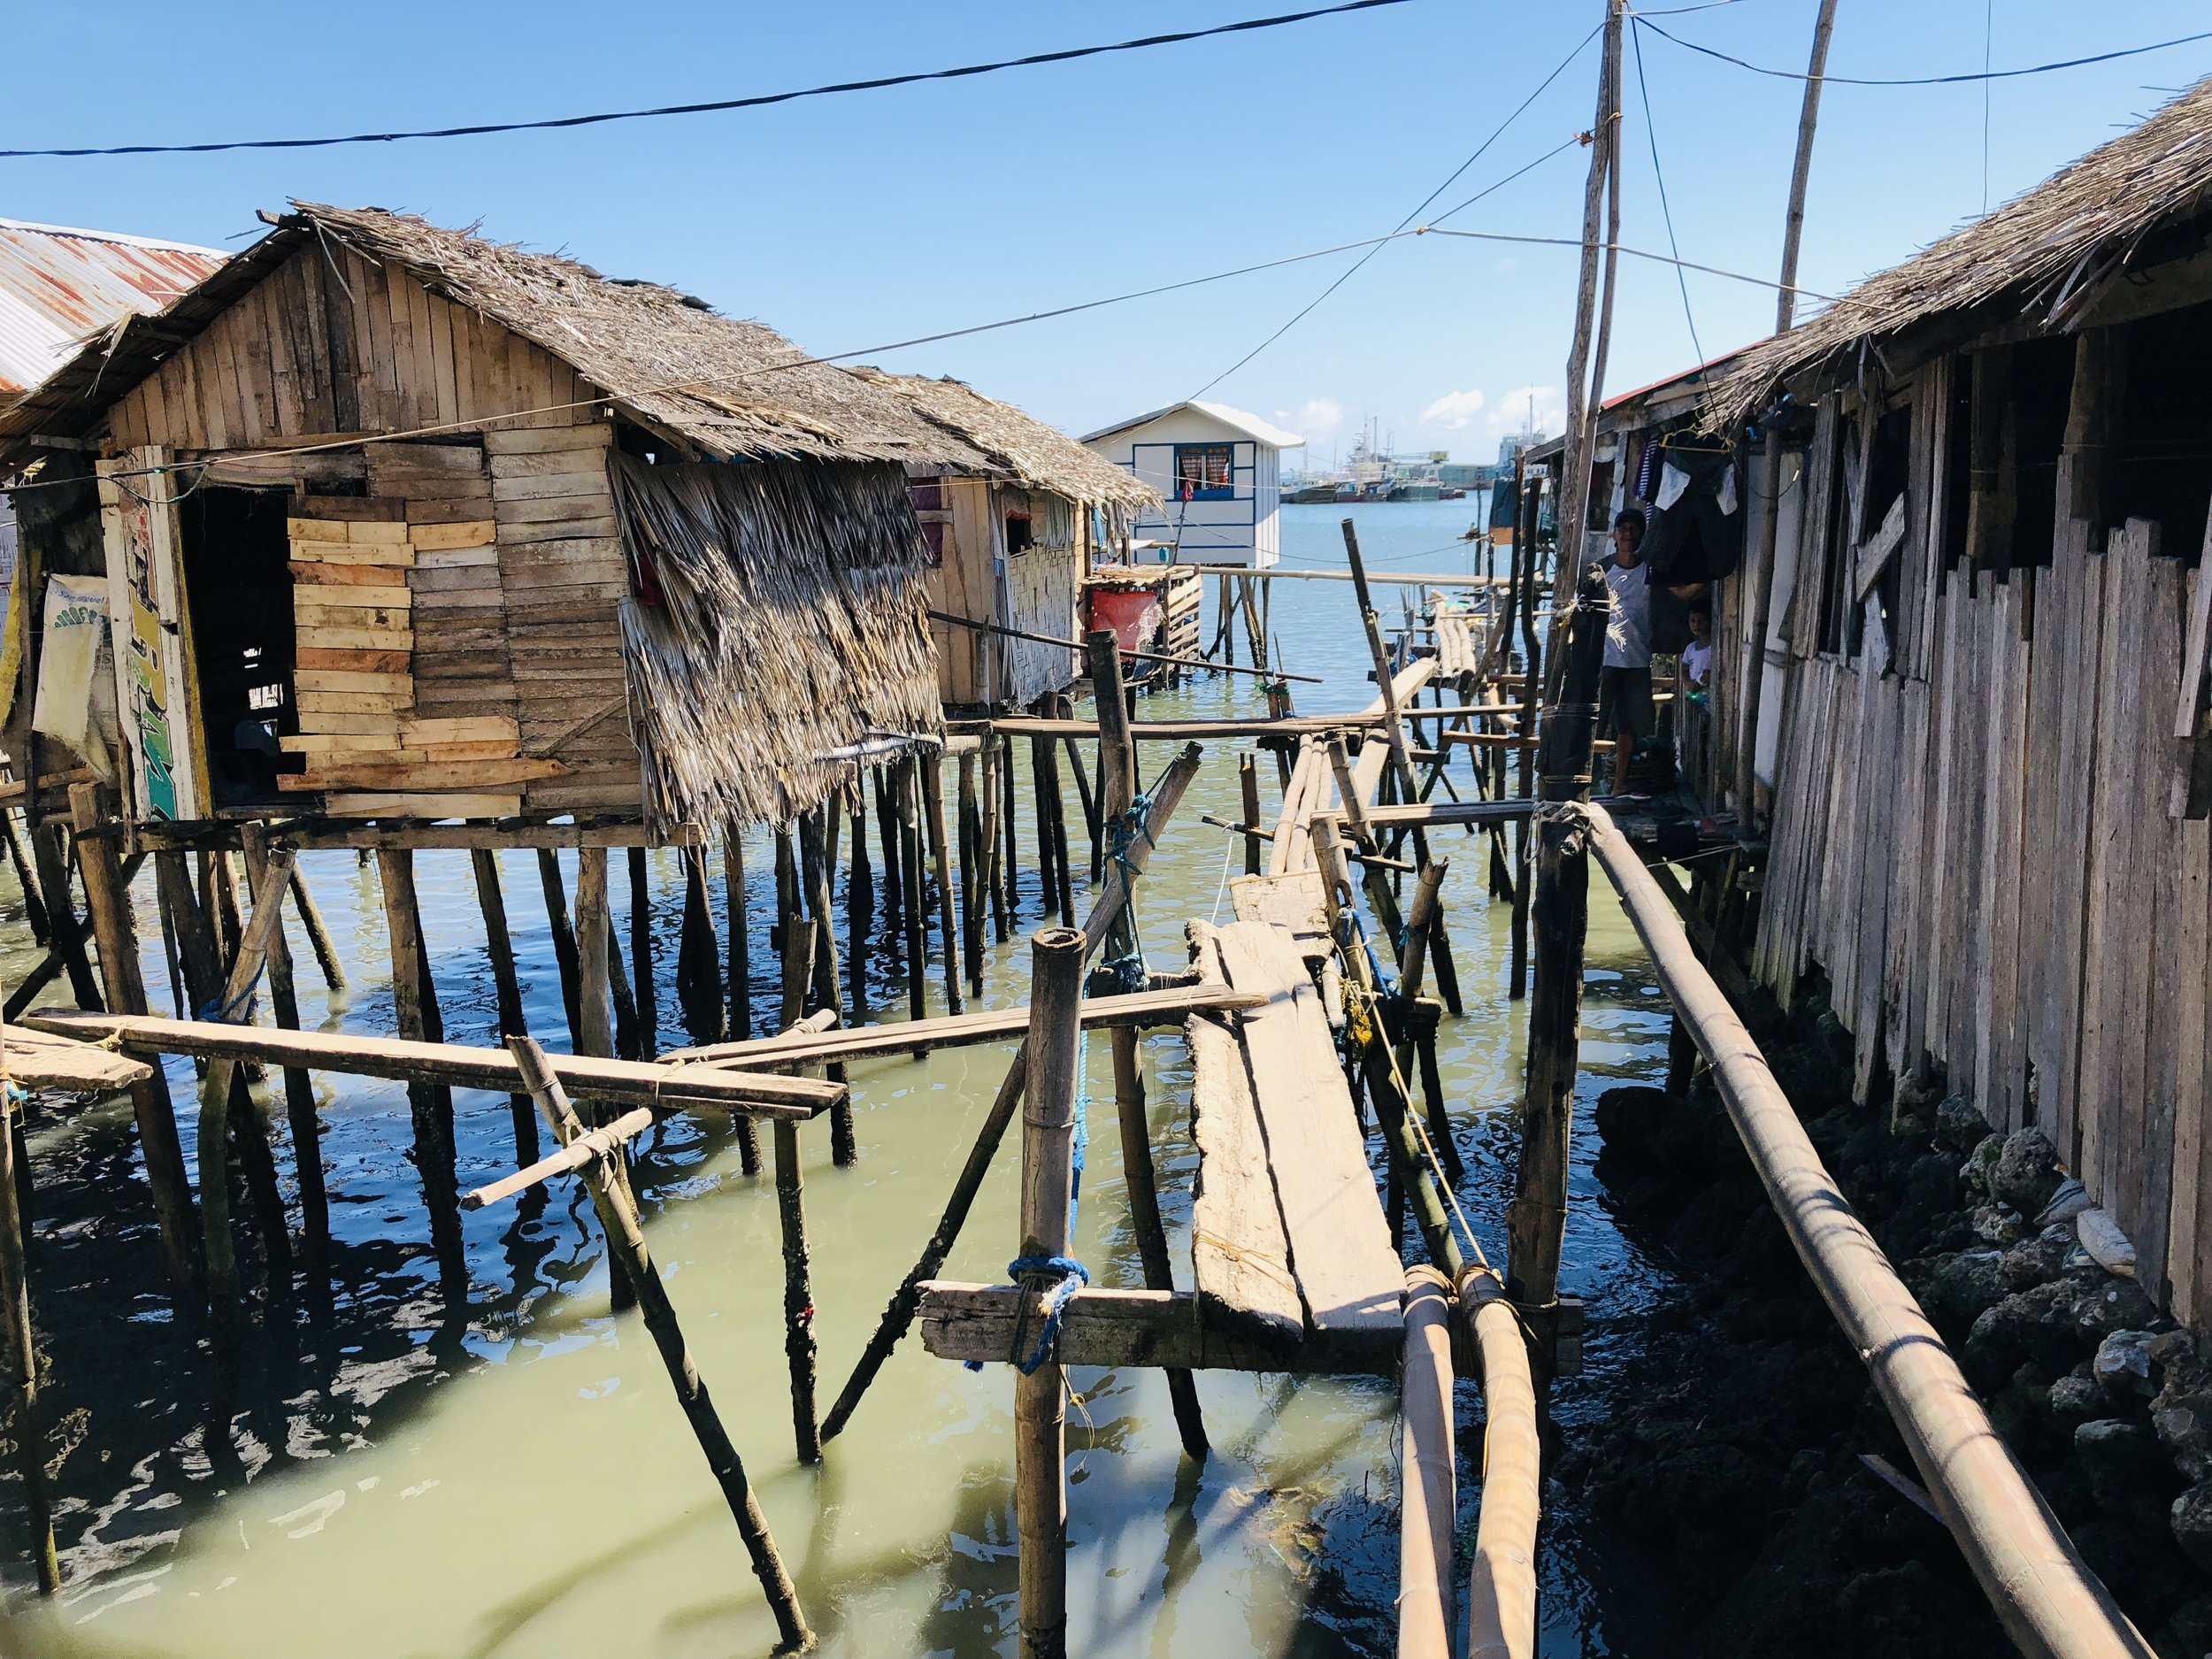 Tribal village in a conflict area in the Philippines.